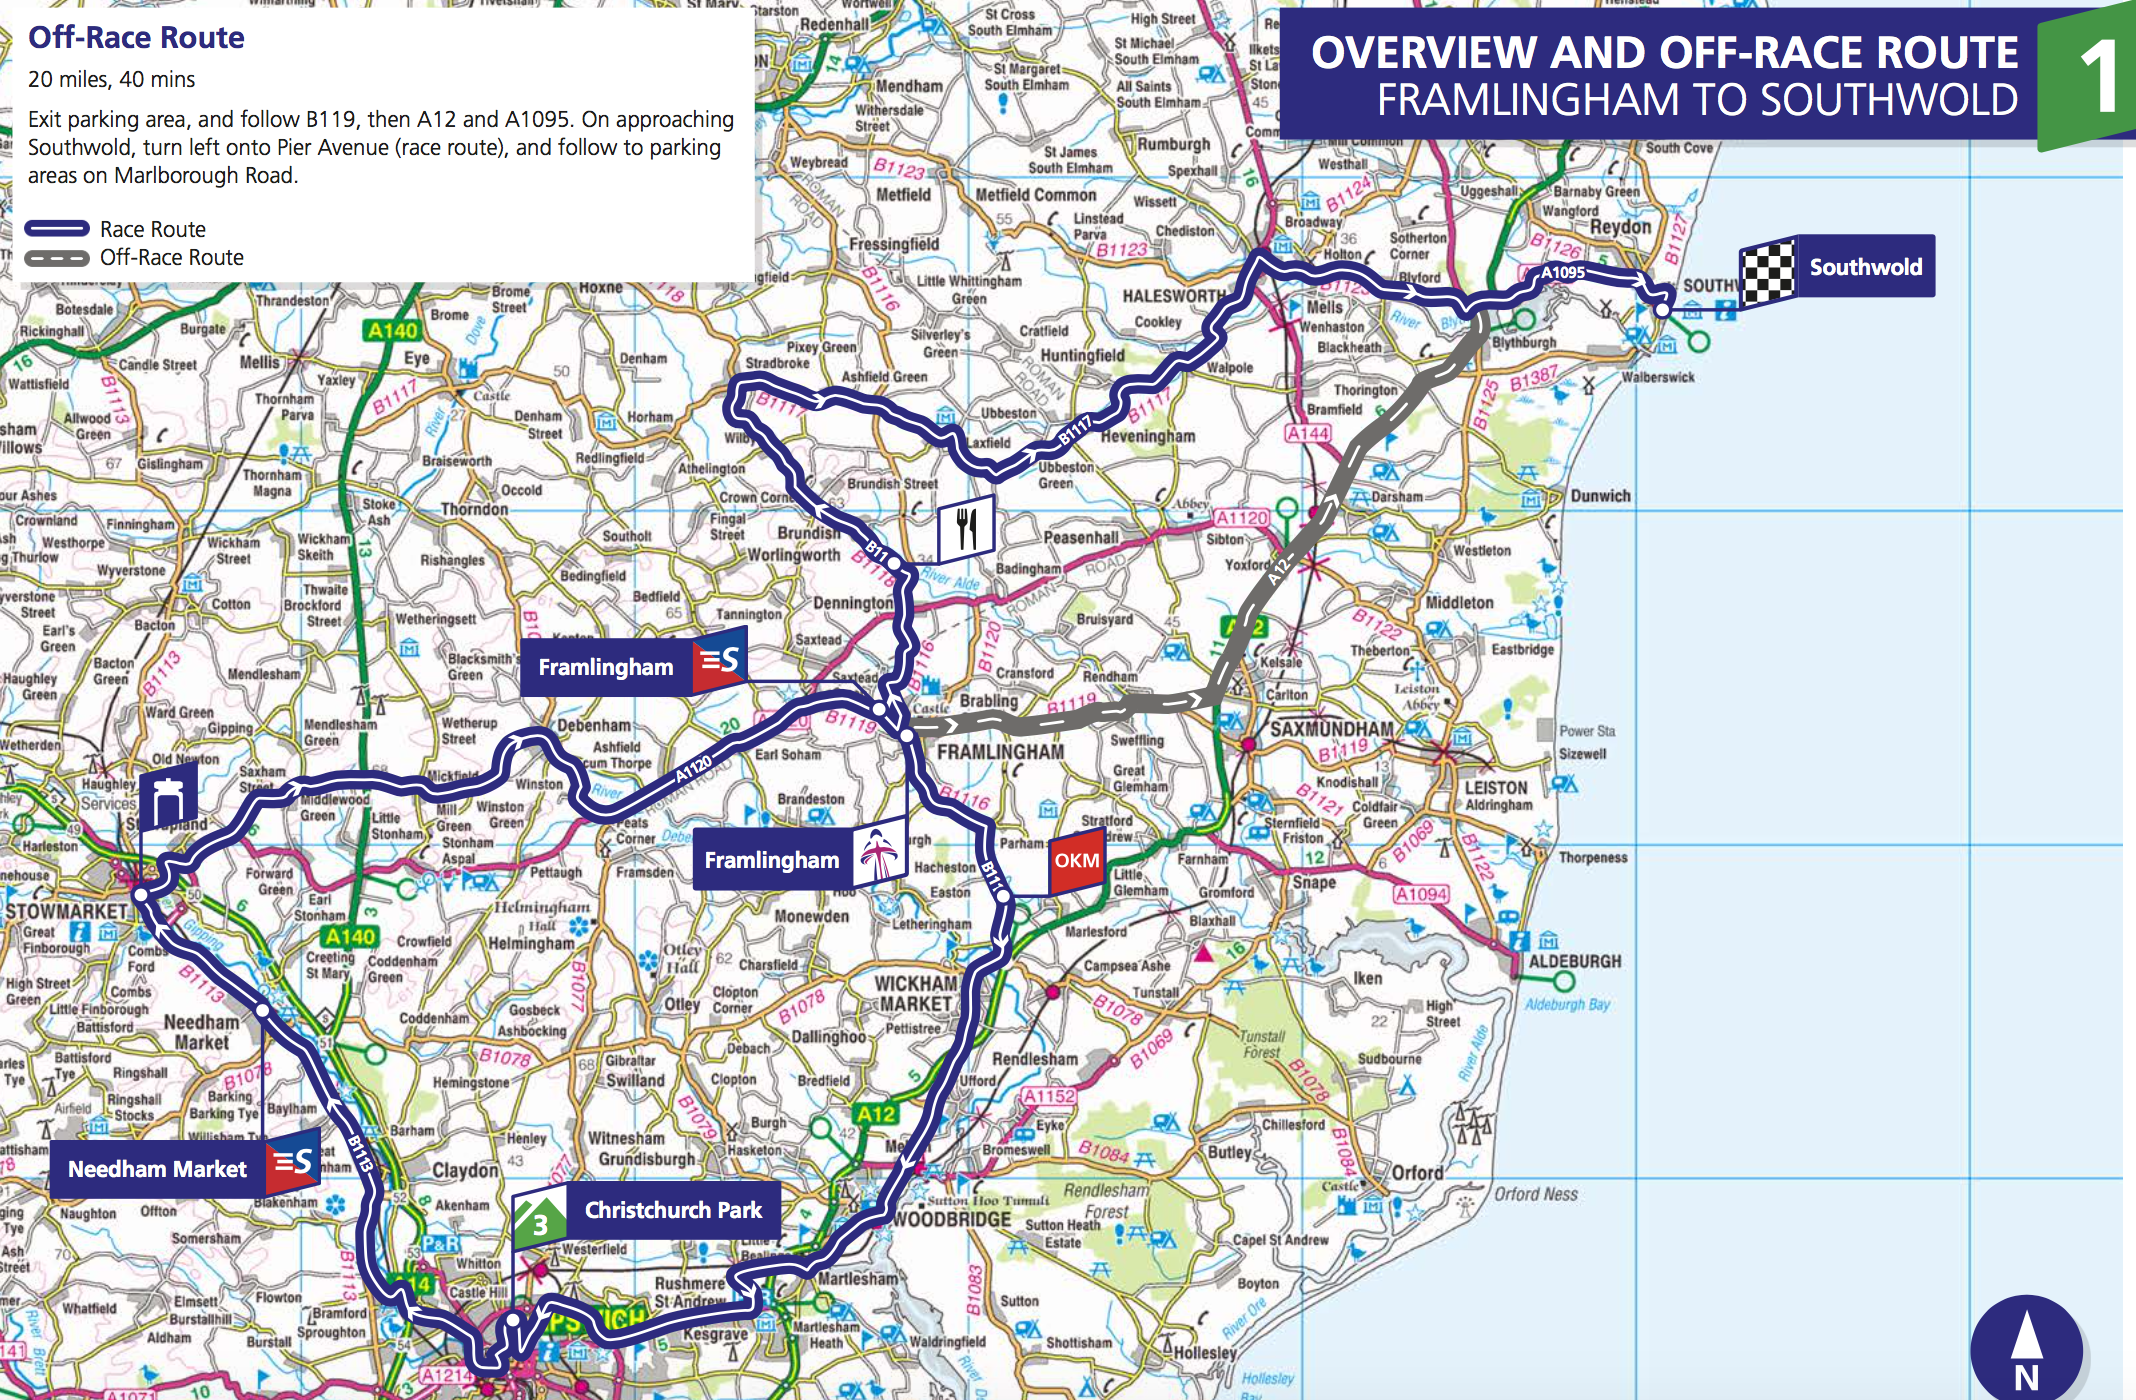 Stage 1. 129.5km from Framlingnam to Southwold. Race starts at 10:30.